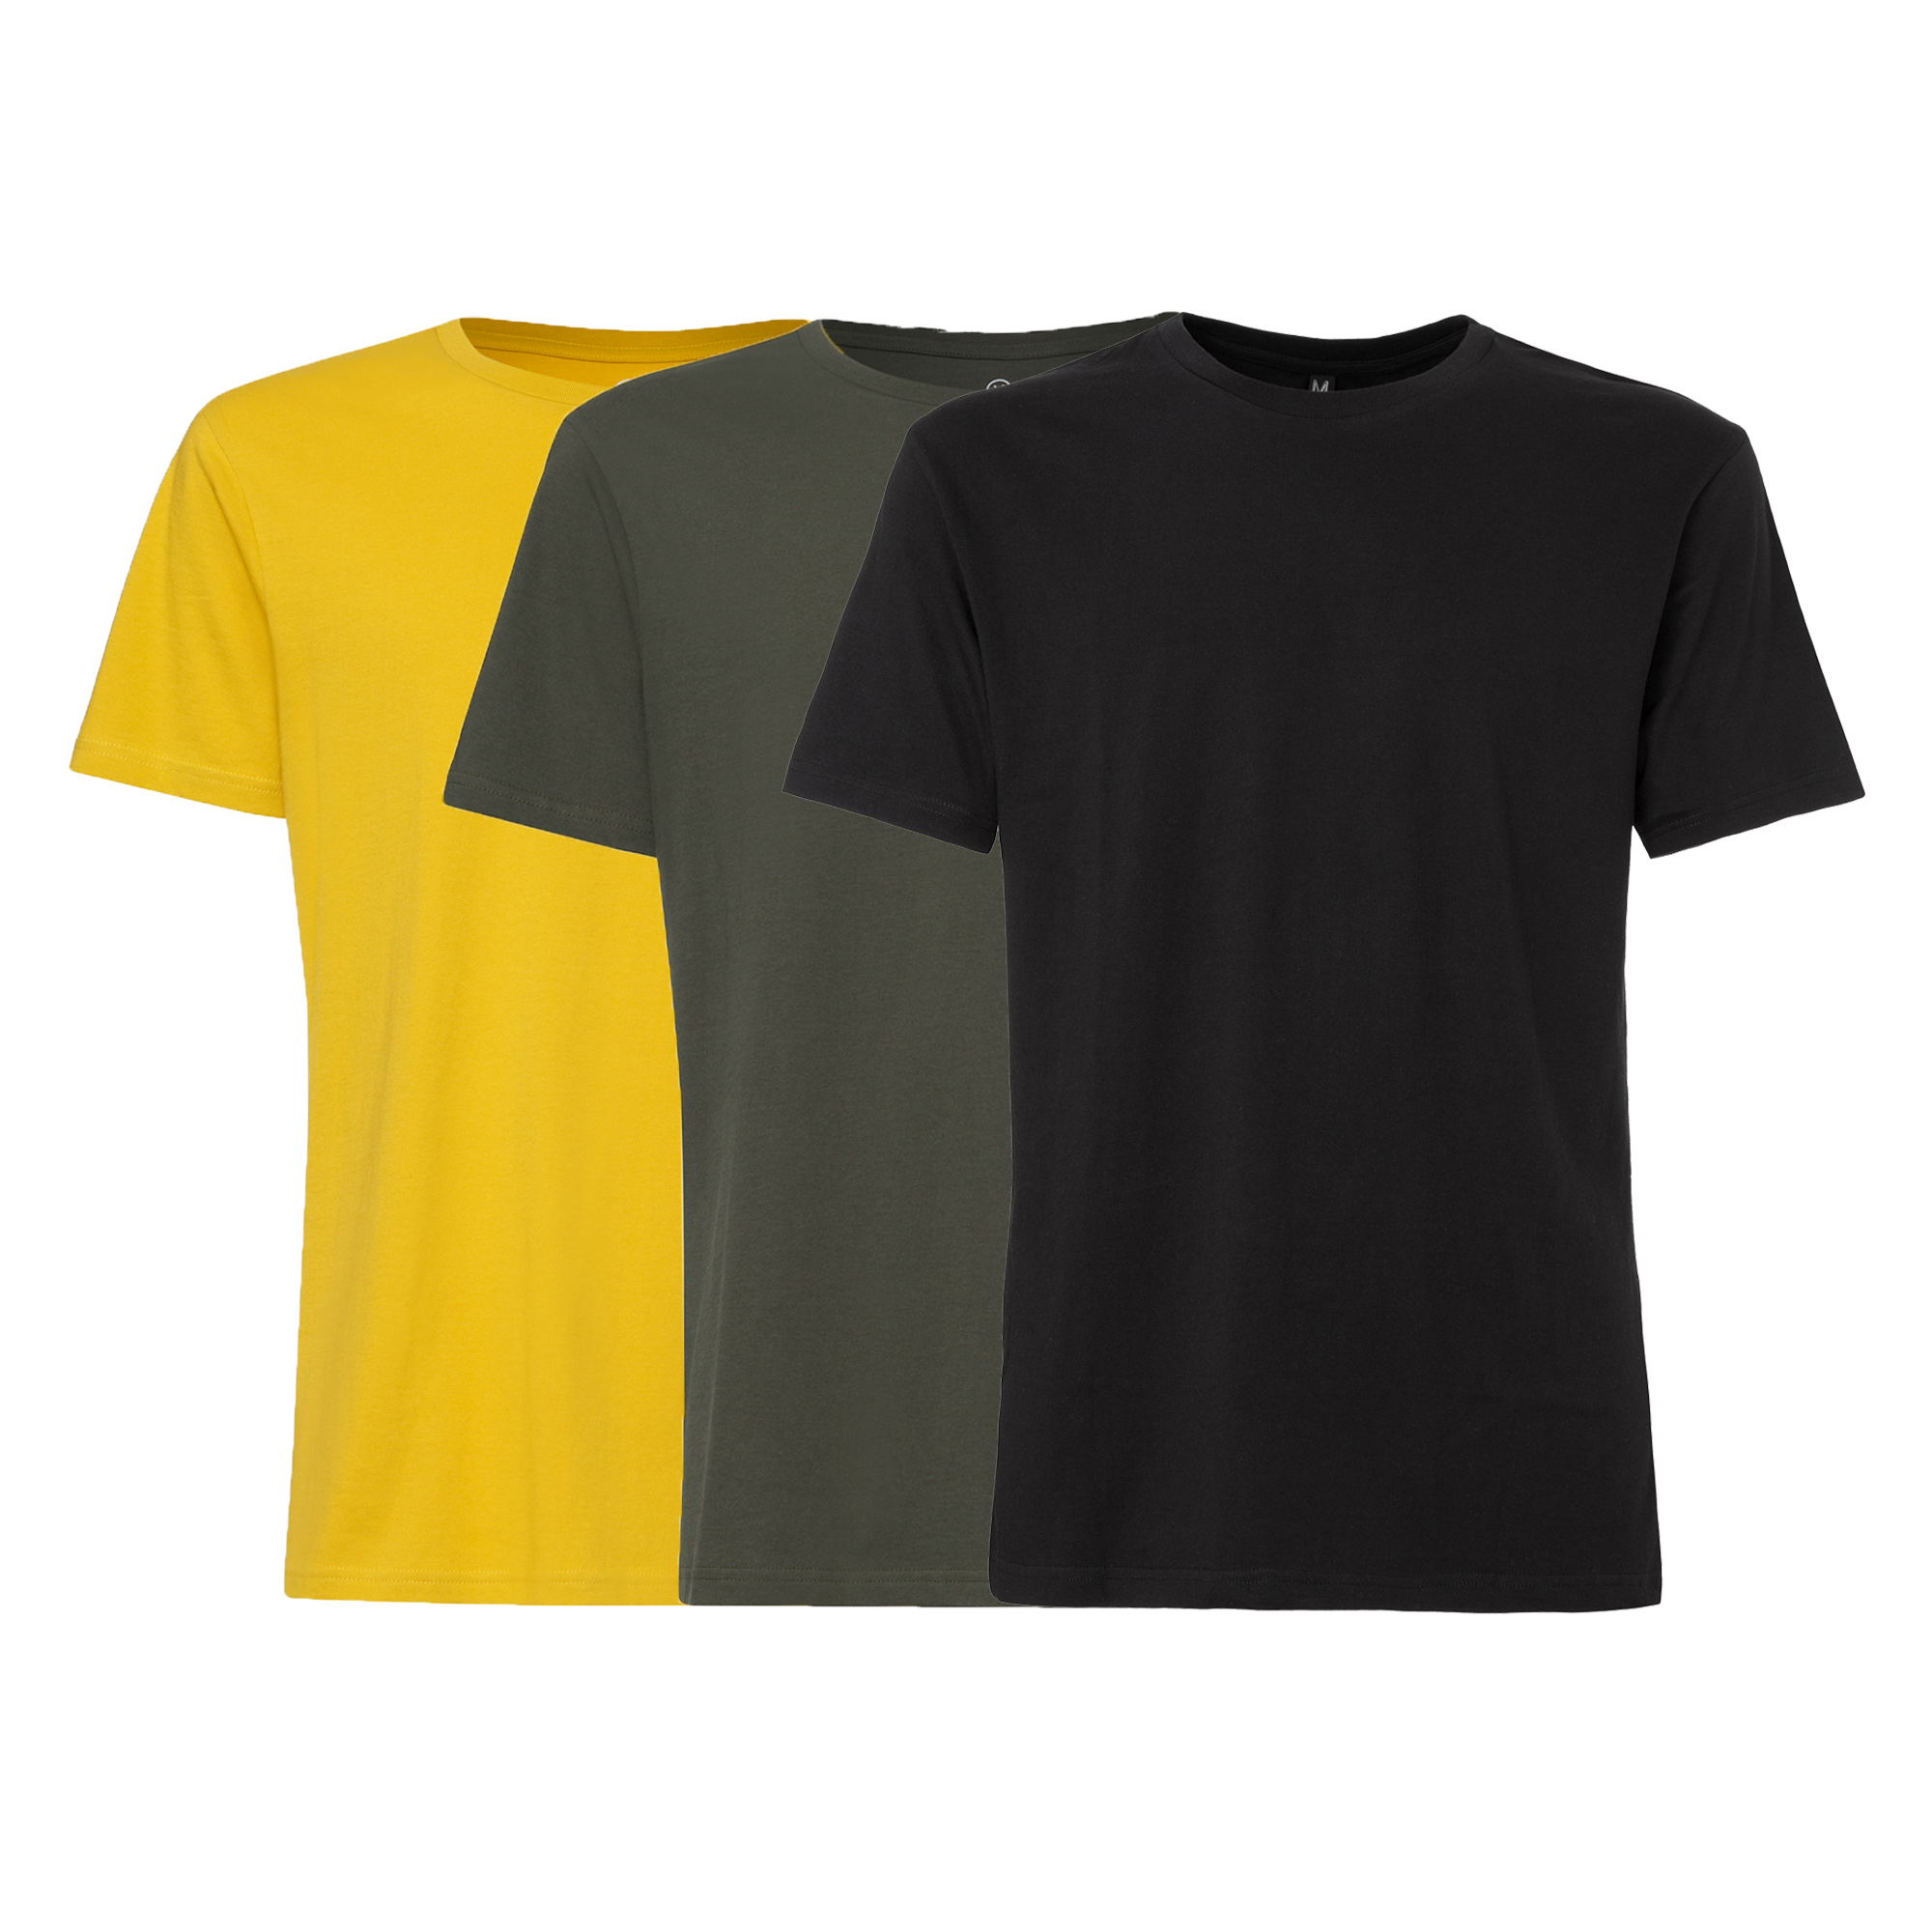 3er Pack TT02 T-Shirt Sulphur/Moss/Black GOTS & Fairtrade